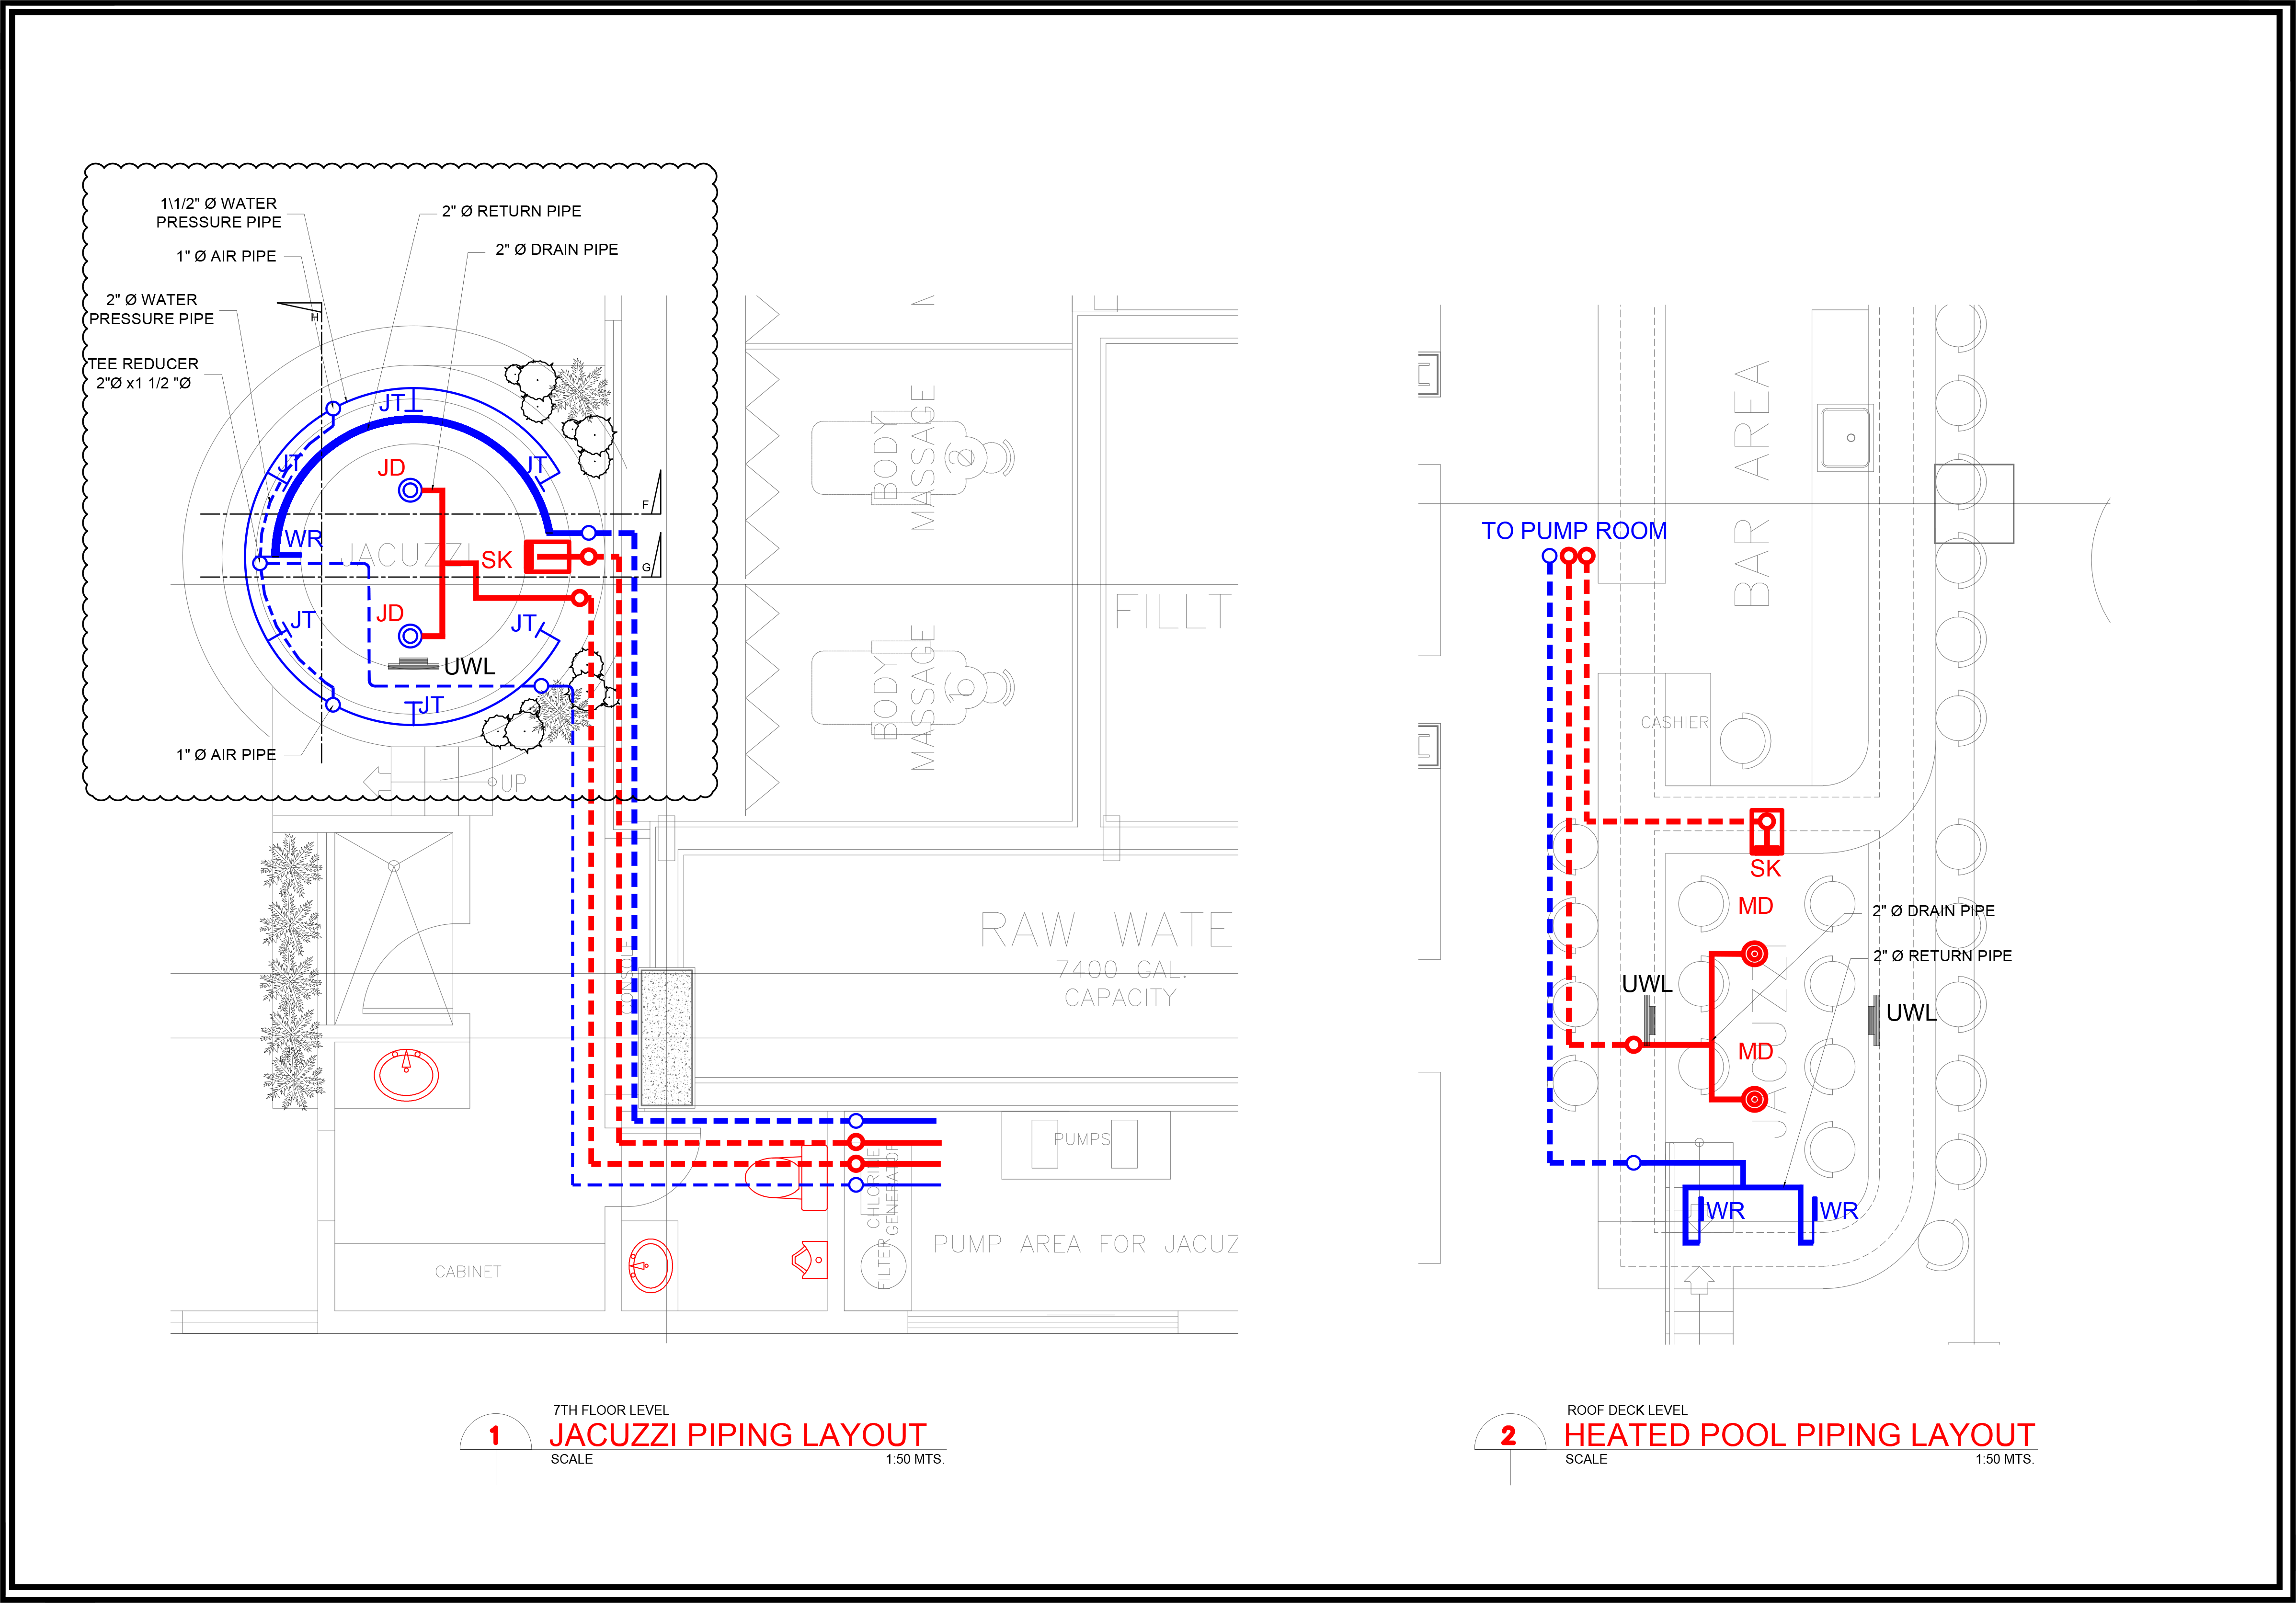 Design And Landscape Jet Pool Specialist Philippines Piping Layout Plan We Do Our Project Based On Approved